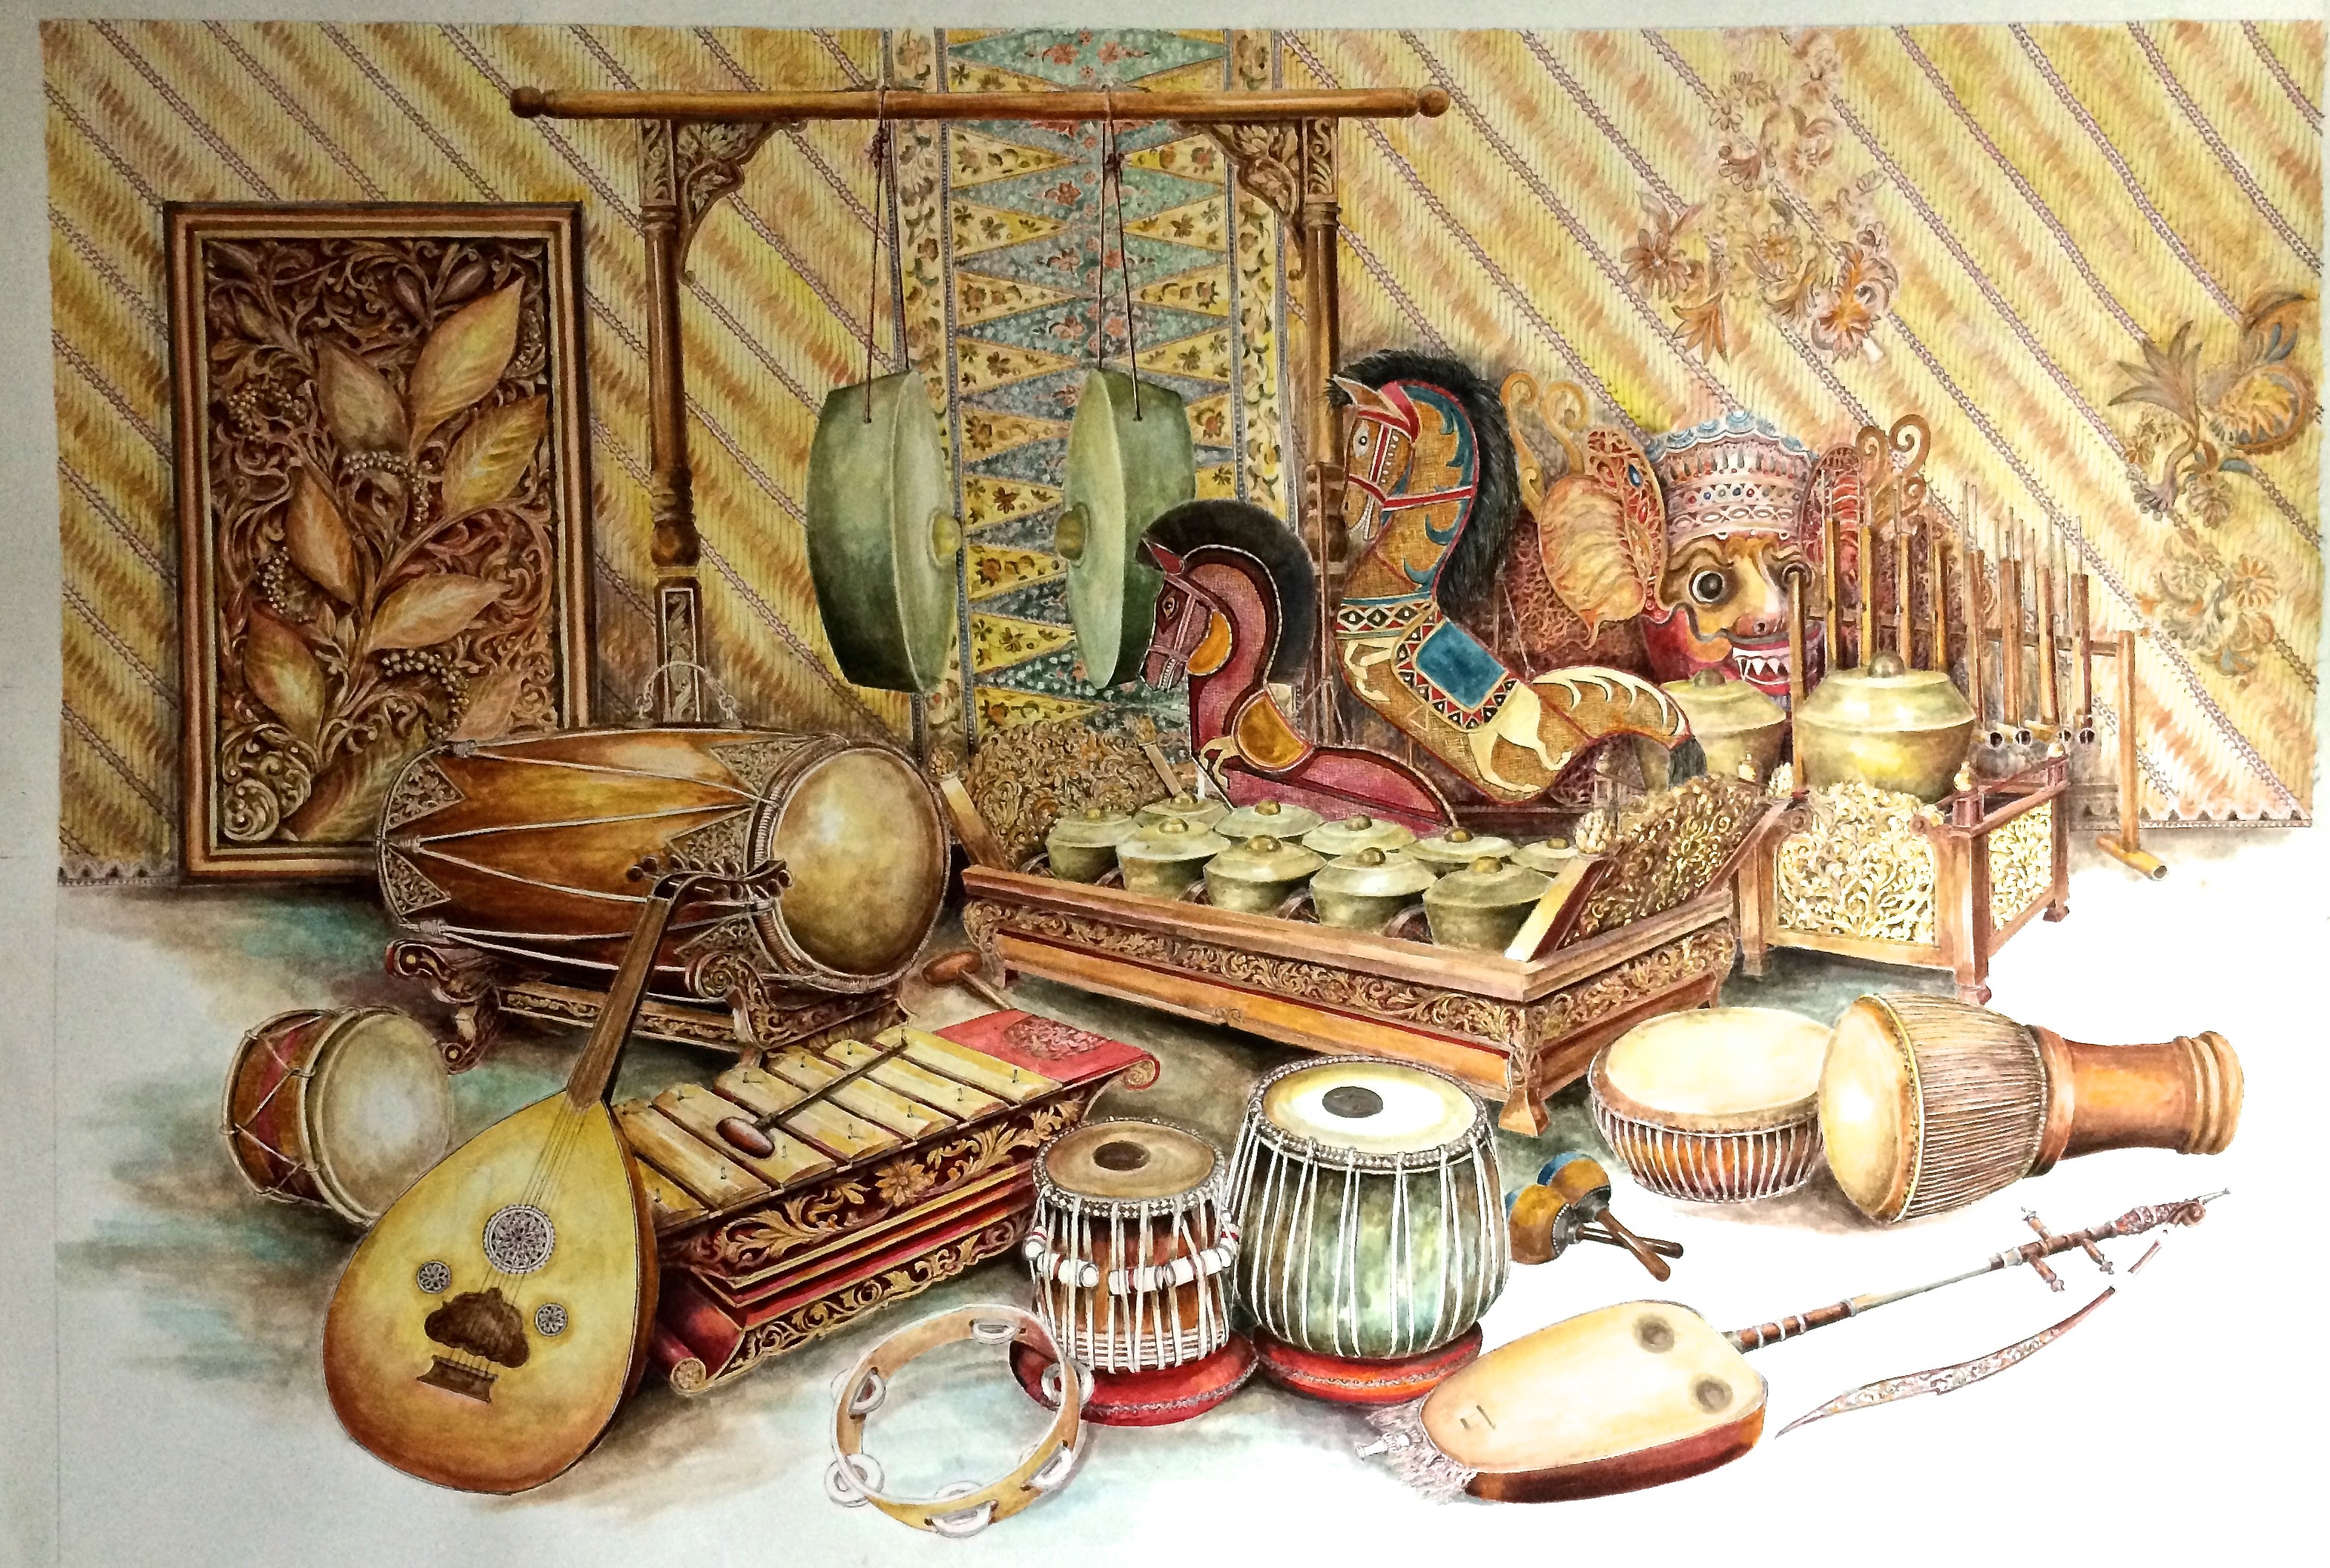 Malaysia musical instruments